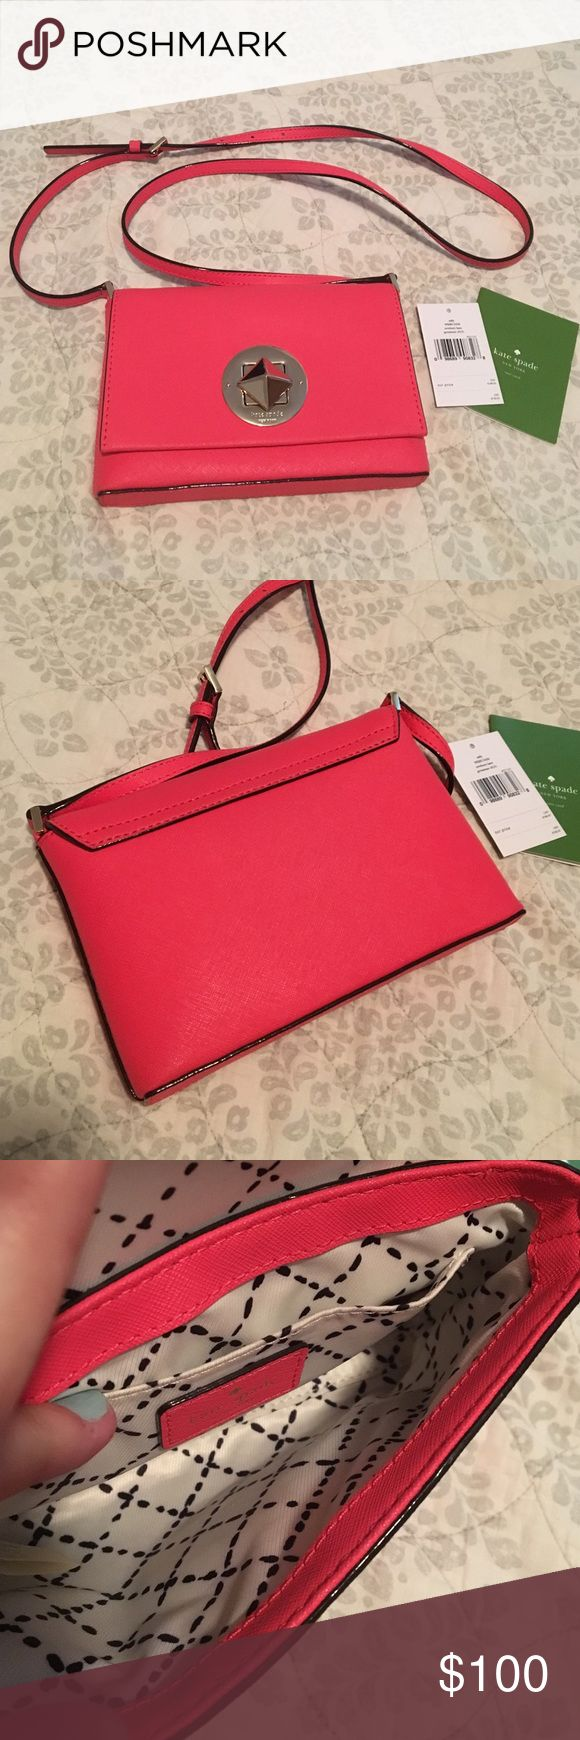 Kate spade Newbury lane geranium crossbody LN!! This is a cross body bag. Great for your phone, lip gloss and cash on a night out! One inside pocket. No marks or stains when I looked it over. Overall great used condition! Item as shown in pics. This is the geranium color, may be a bit more peachy/orange tint in person but I would say it def looks pink too. Very bright and gorgeous bag! kate spade Bags Crossbody Bags